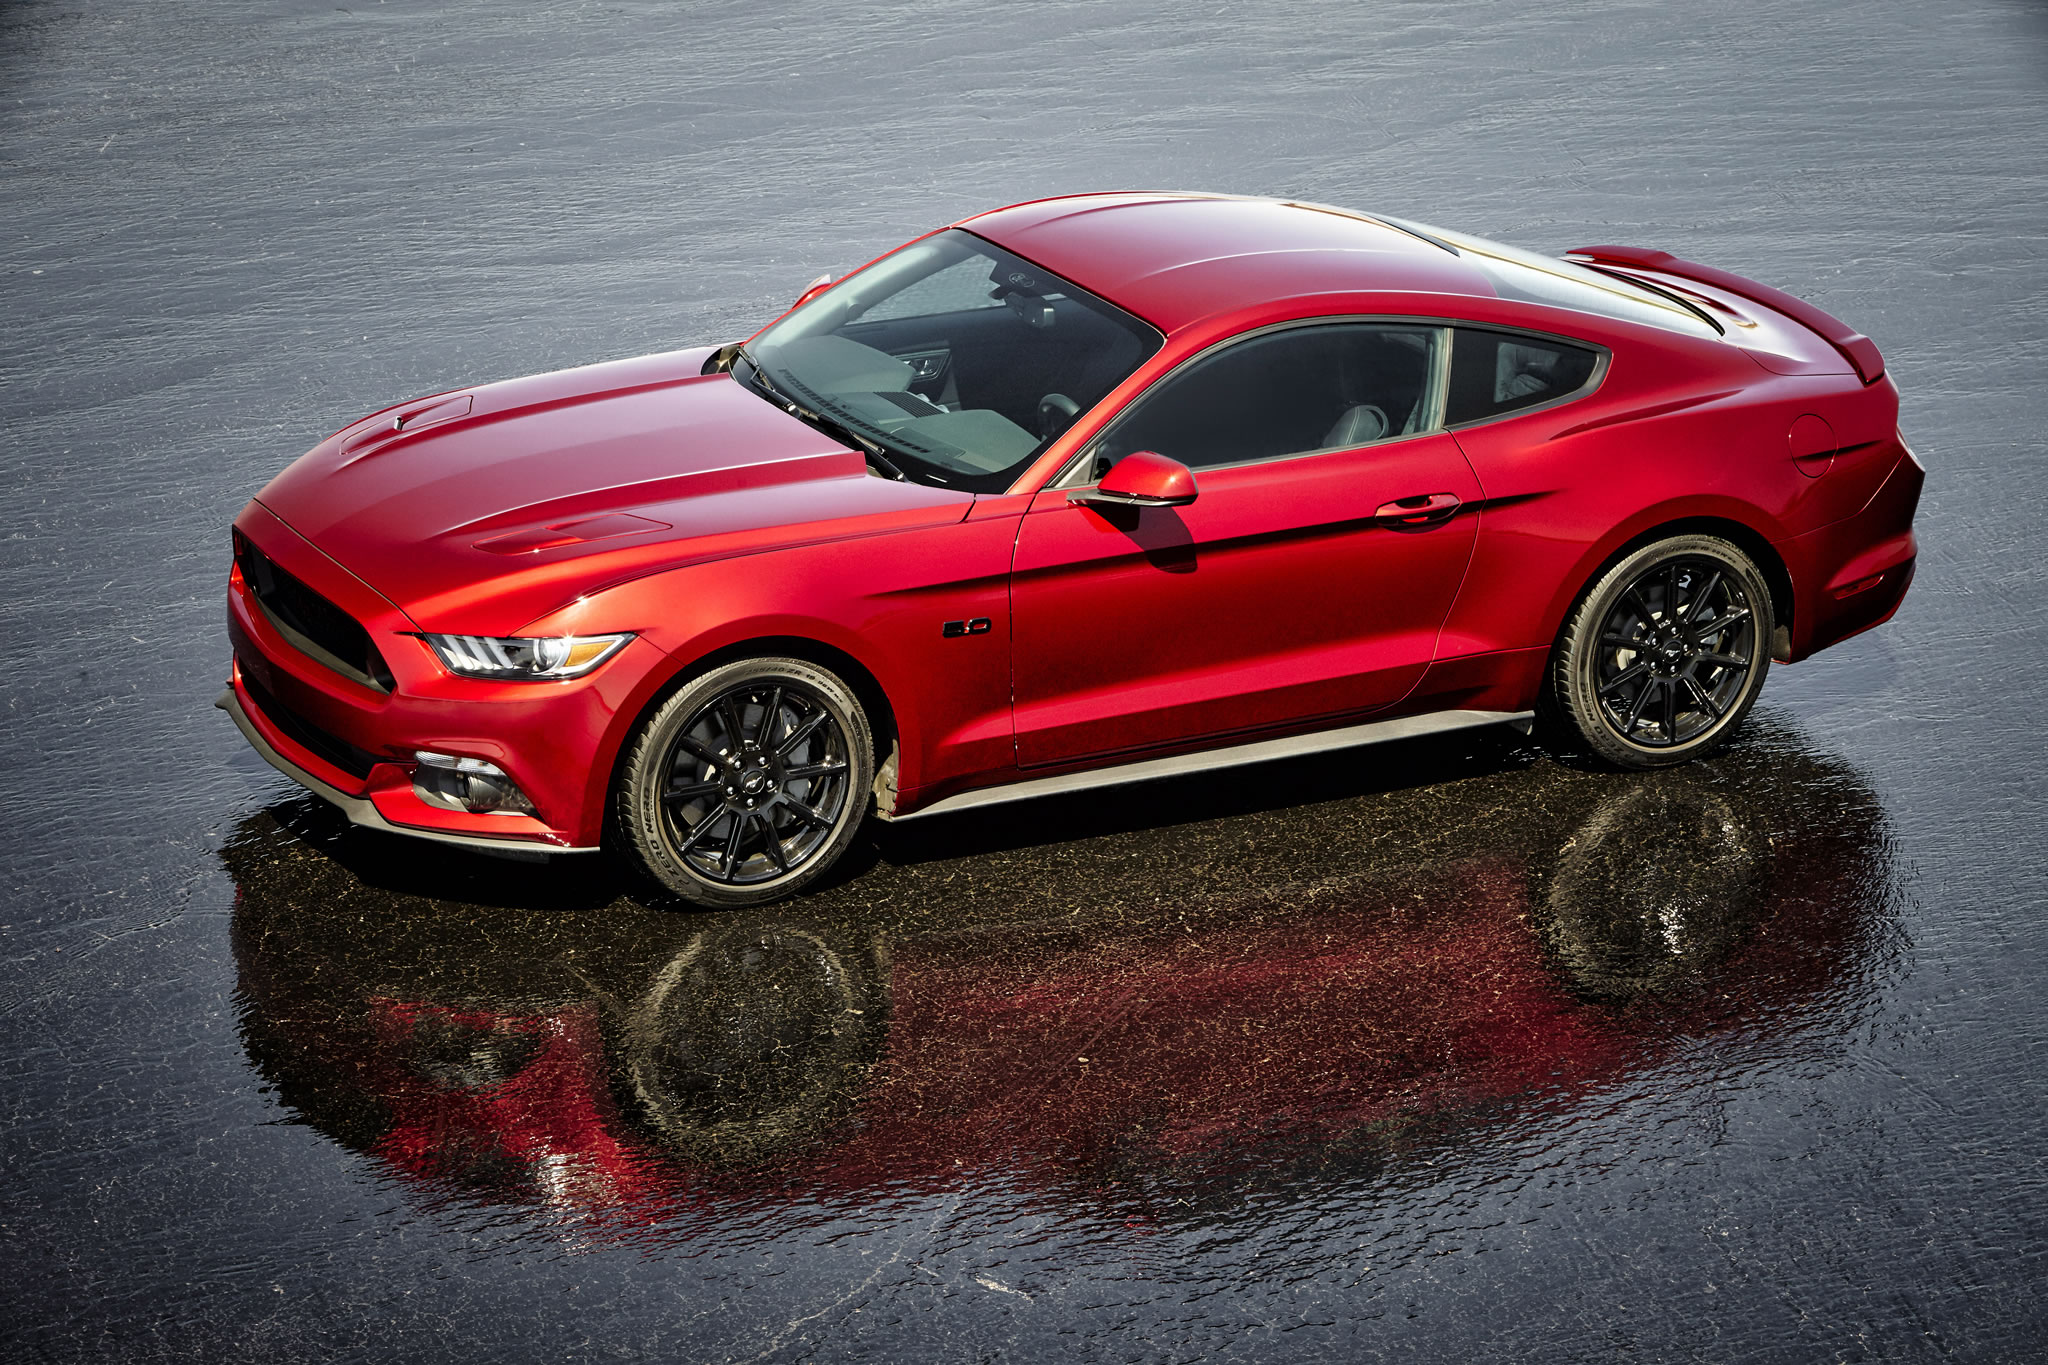 2015 ford mustang car and driver gallery & 2015 Ford Mustang Car And Driver - Car Autos Gallery markmcfarlin.com